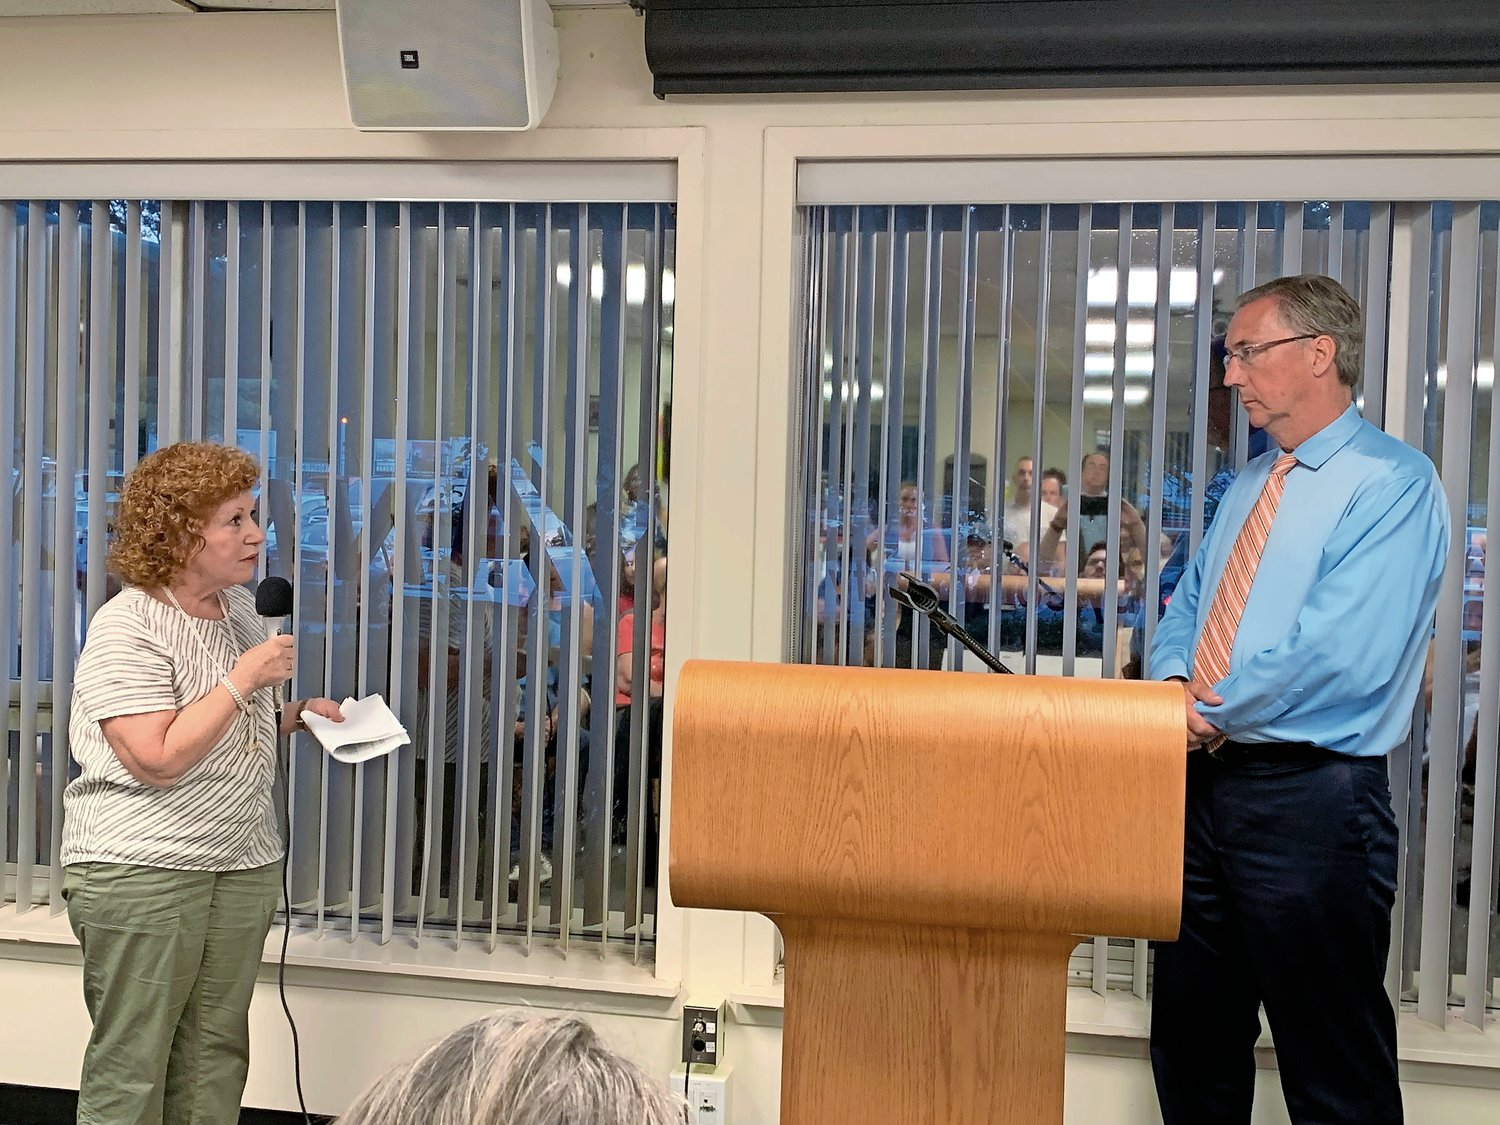 Carol DiPaolo, left, of the Coalition to Save Hempstead Harbor, suggested to Sen. Jim Gaughran that developers be encouraged to move toward clean energy.